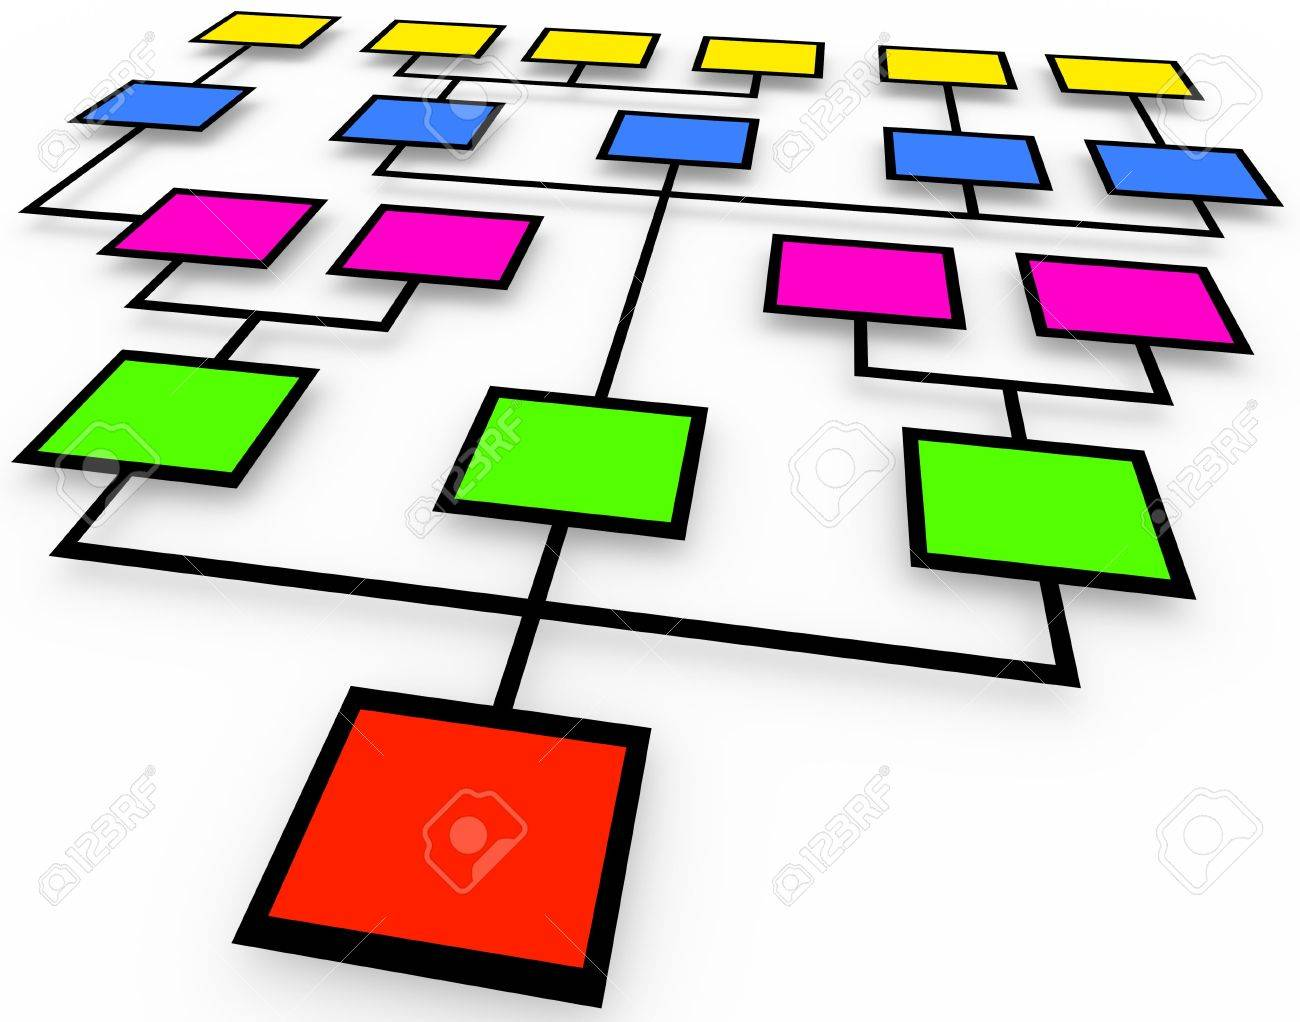 An organizational chart of colored boxes on white background Stock Photo - 7805468